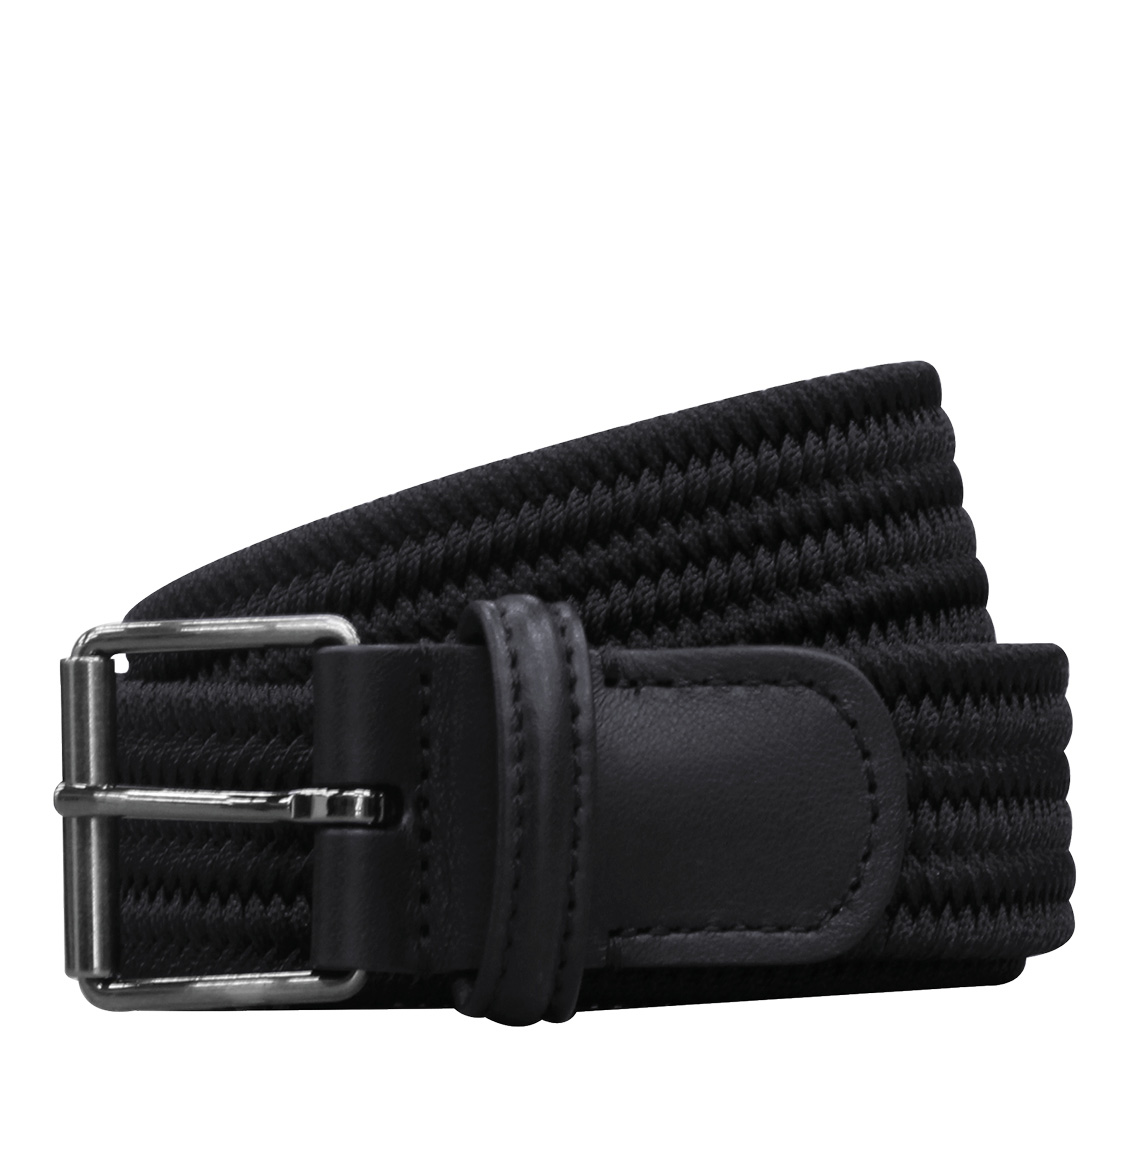 Anderson's Leather-Trimmed Woven Slim Belt Navy